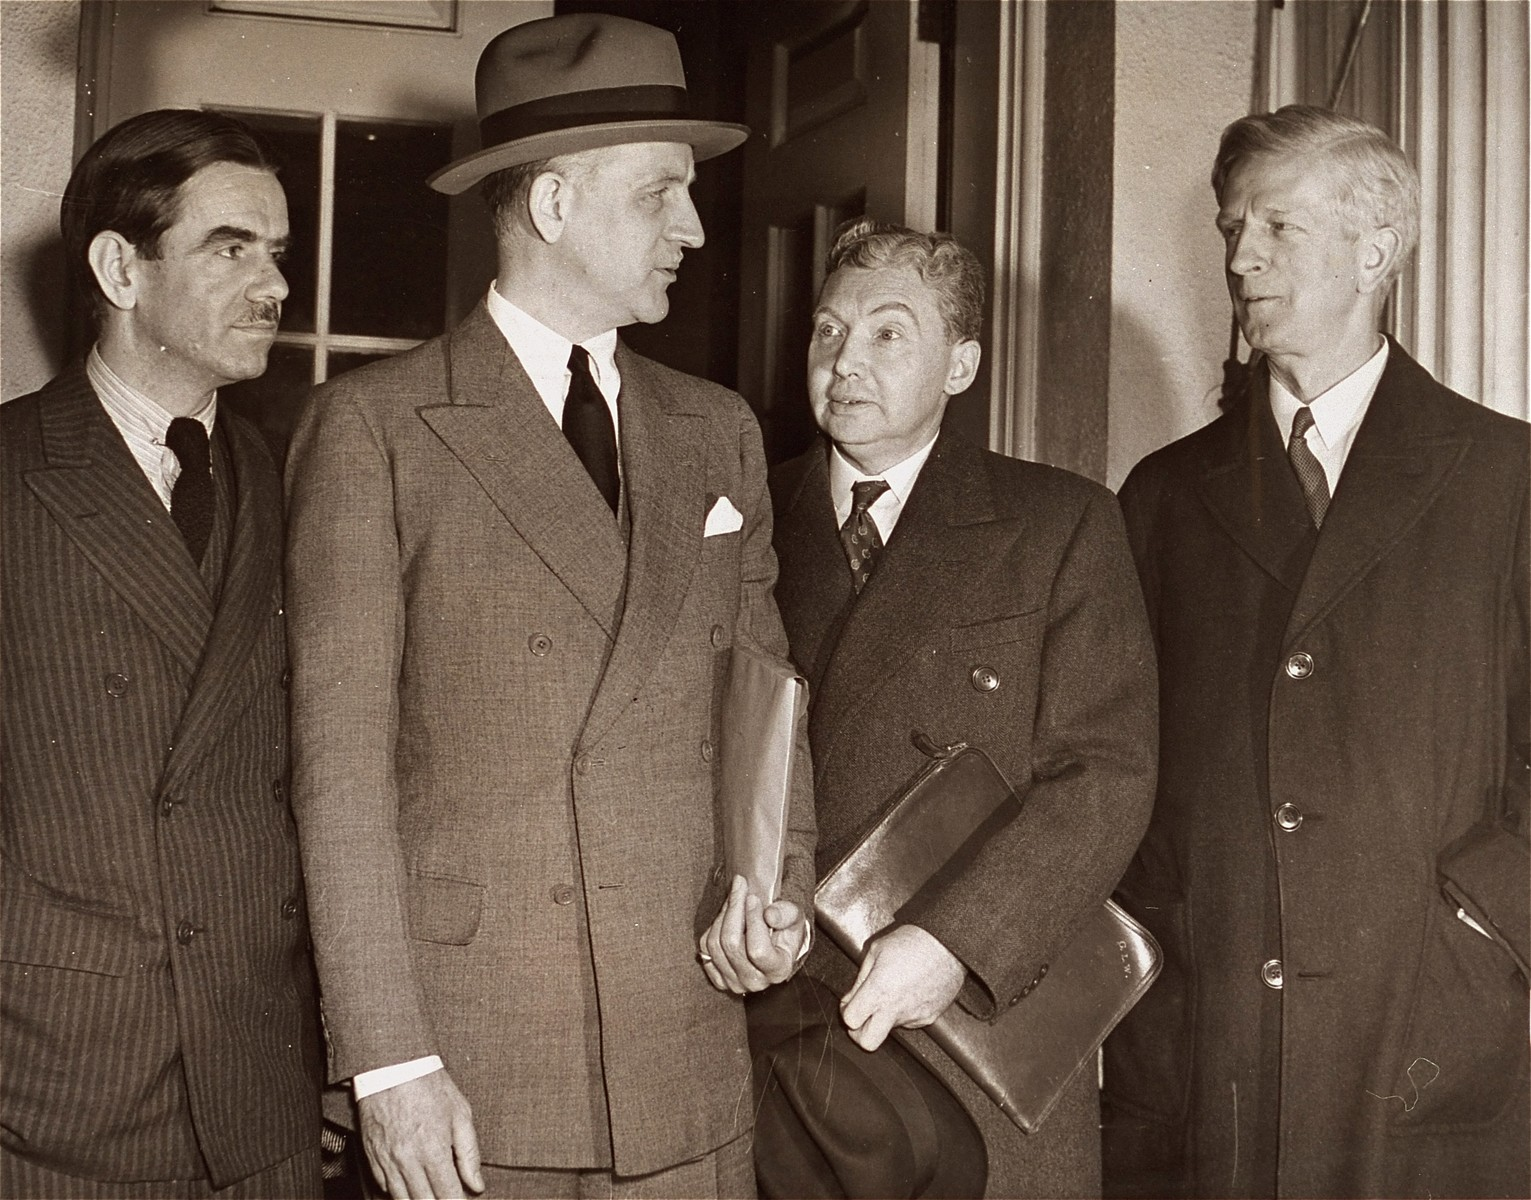 "Members of the President's Advisory Committee on Political Refugees pose with Under Secretary of State Sumner Welles after their meeting at the White House with Roosevelt.  Pictured from left to right are: Hamilton F. Armstrong, Sumner Welles, committee secretary George L. Warren, and committee chairman, James McDonald.  Original  AP caption reads: ""With tense relations existing between nations over handling of minorities, the National Advisory Committee on Refugees reported to President Roosevelt in Washinton, D.C. Nov. 16 at the White House.  From the left: Committeeman Hamilton F. Armstrong; Under Secretary of State Sumner Welles who sat in on the meeting; Secretary of Committee George L. Warren and Chairman James Mac Donald [sic]."""